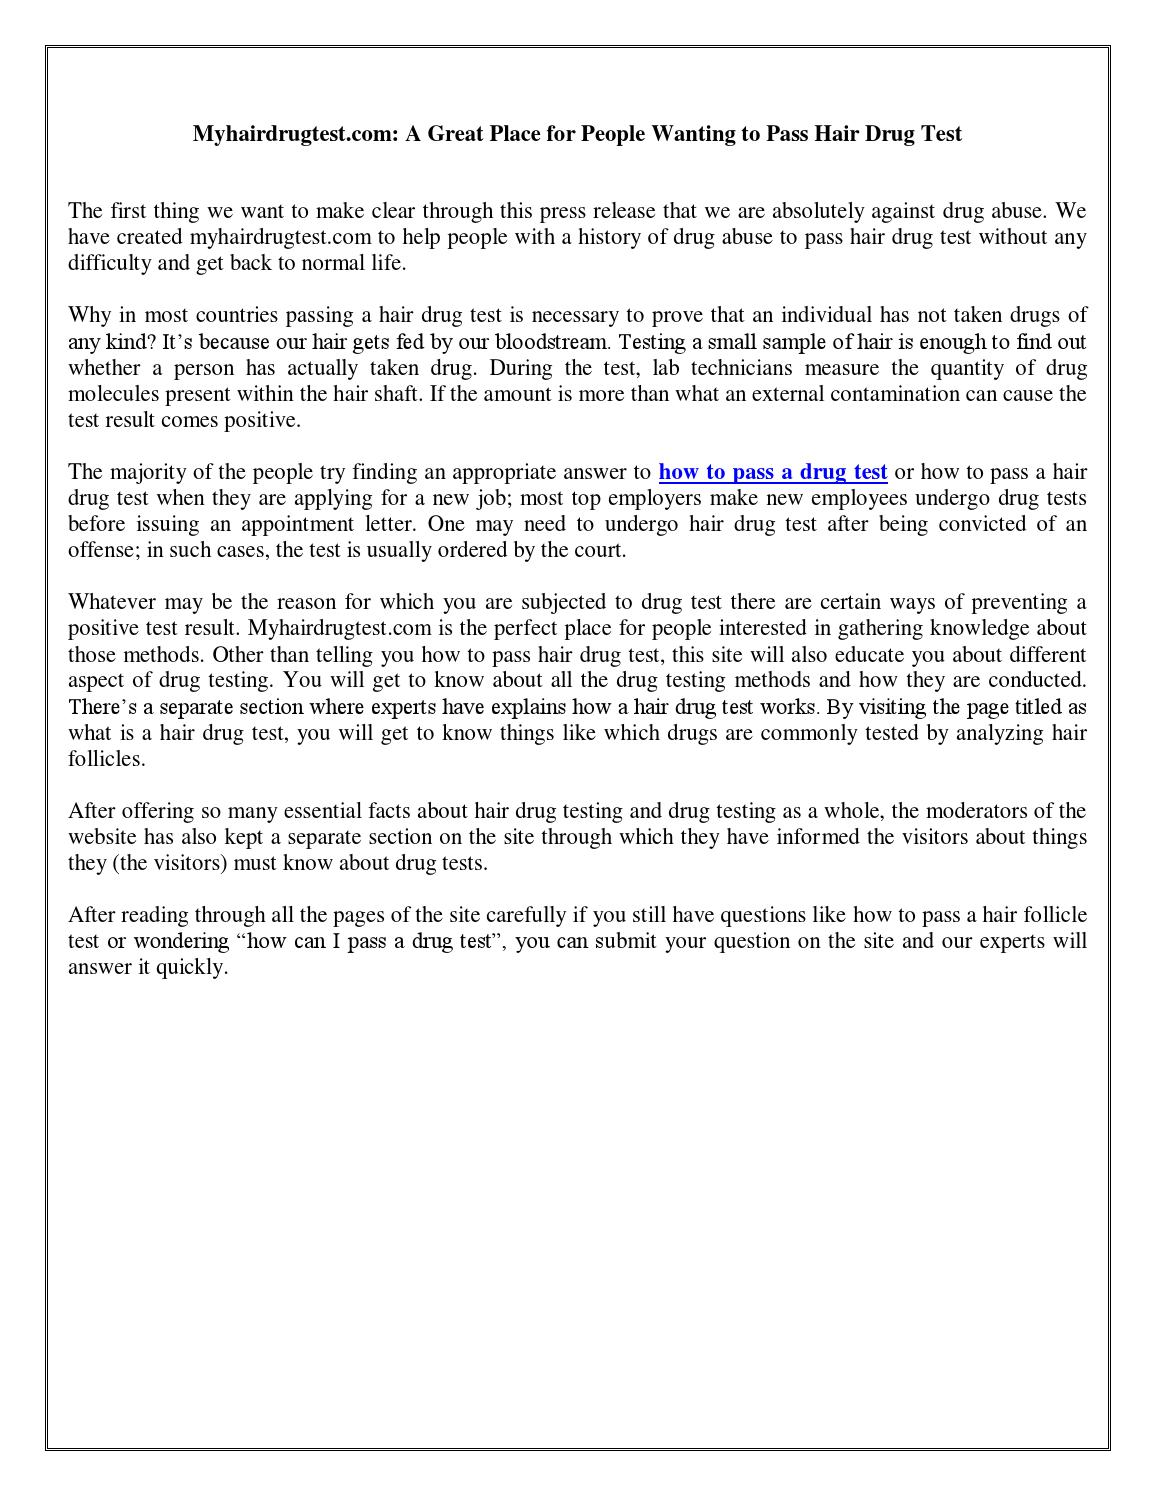 how to pass a hair follicle test by bakeredwards871 - issuu